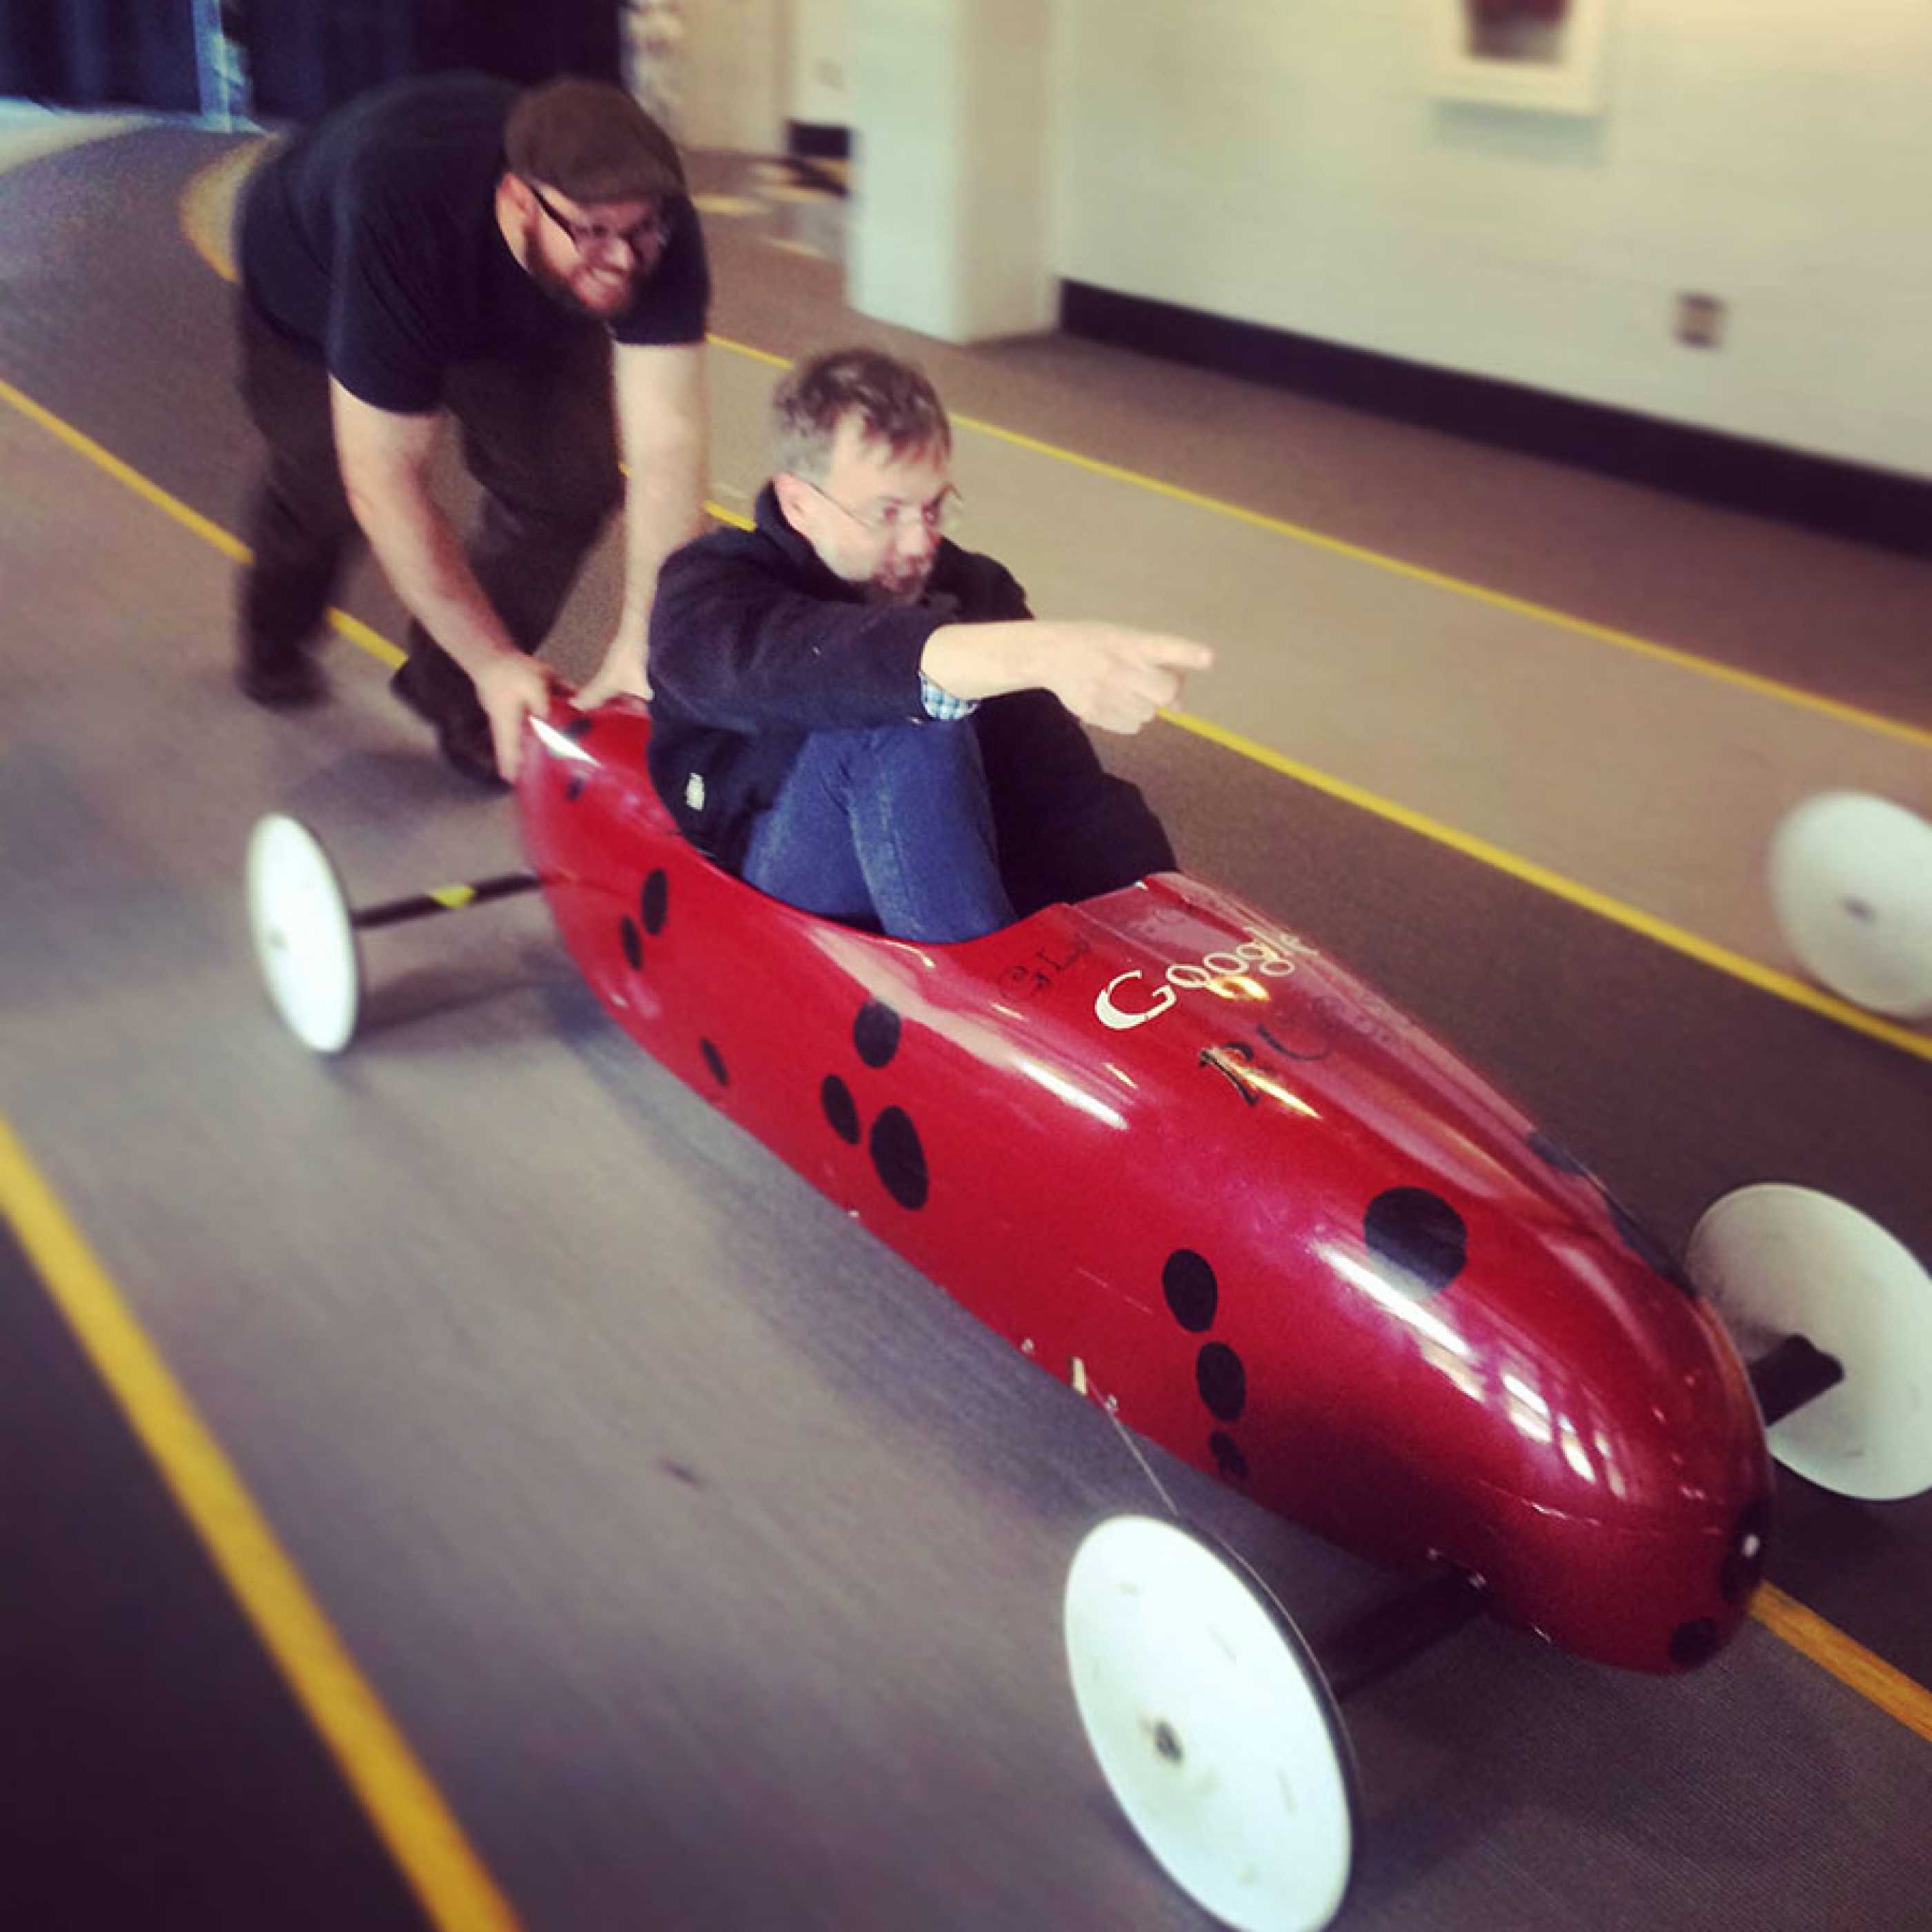 Josh White pushes Mark Nystrom in soap box derby car at STEAM Expo